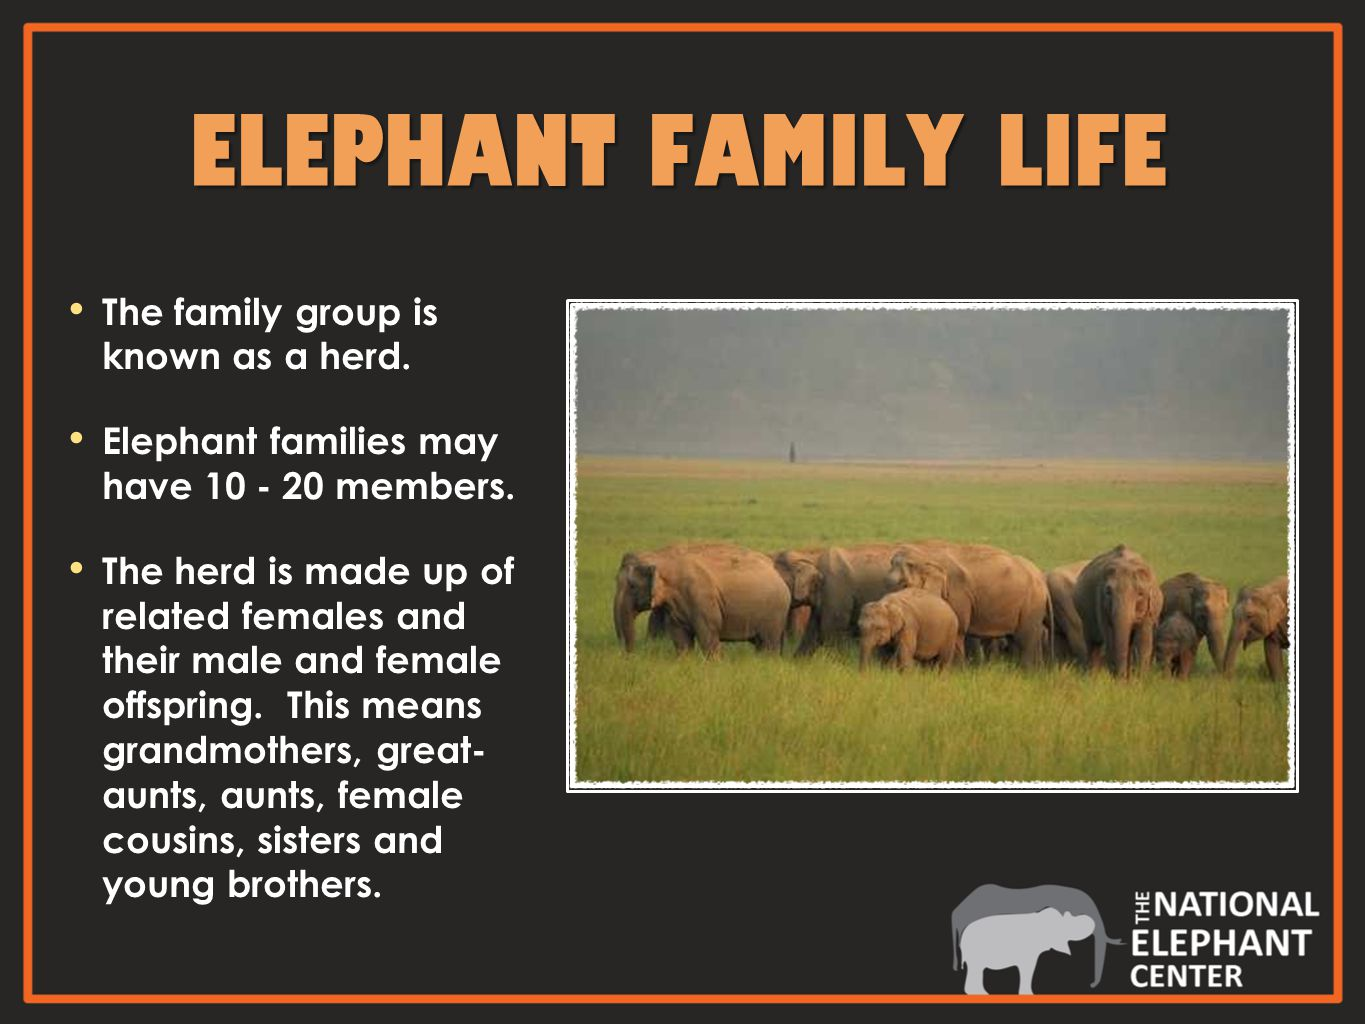 ELEPHANT FAMILY LIFE The family group is known as a herd.